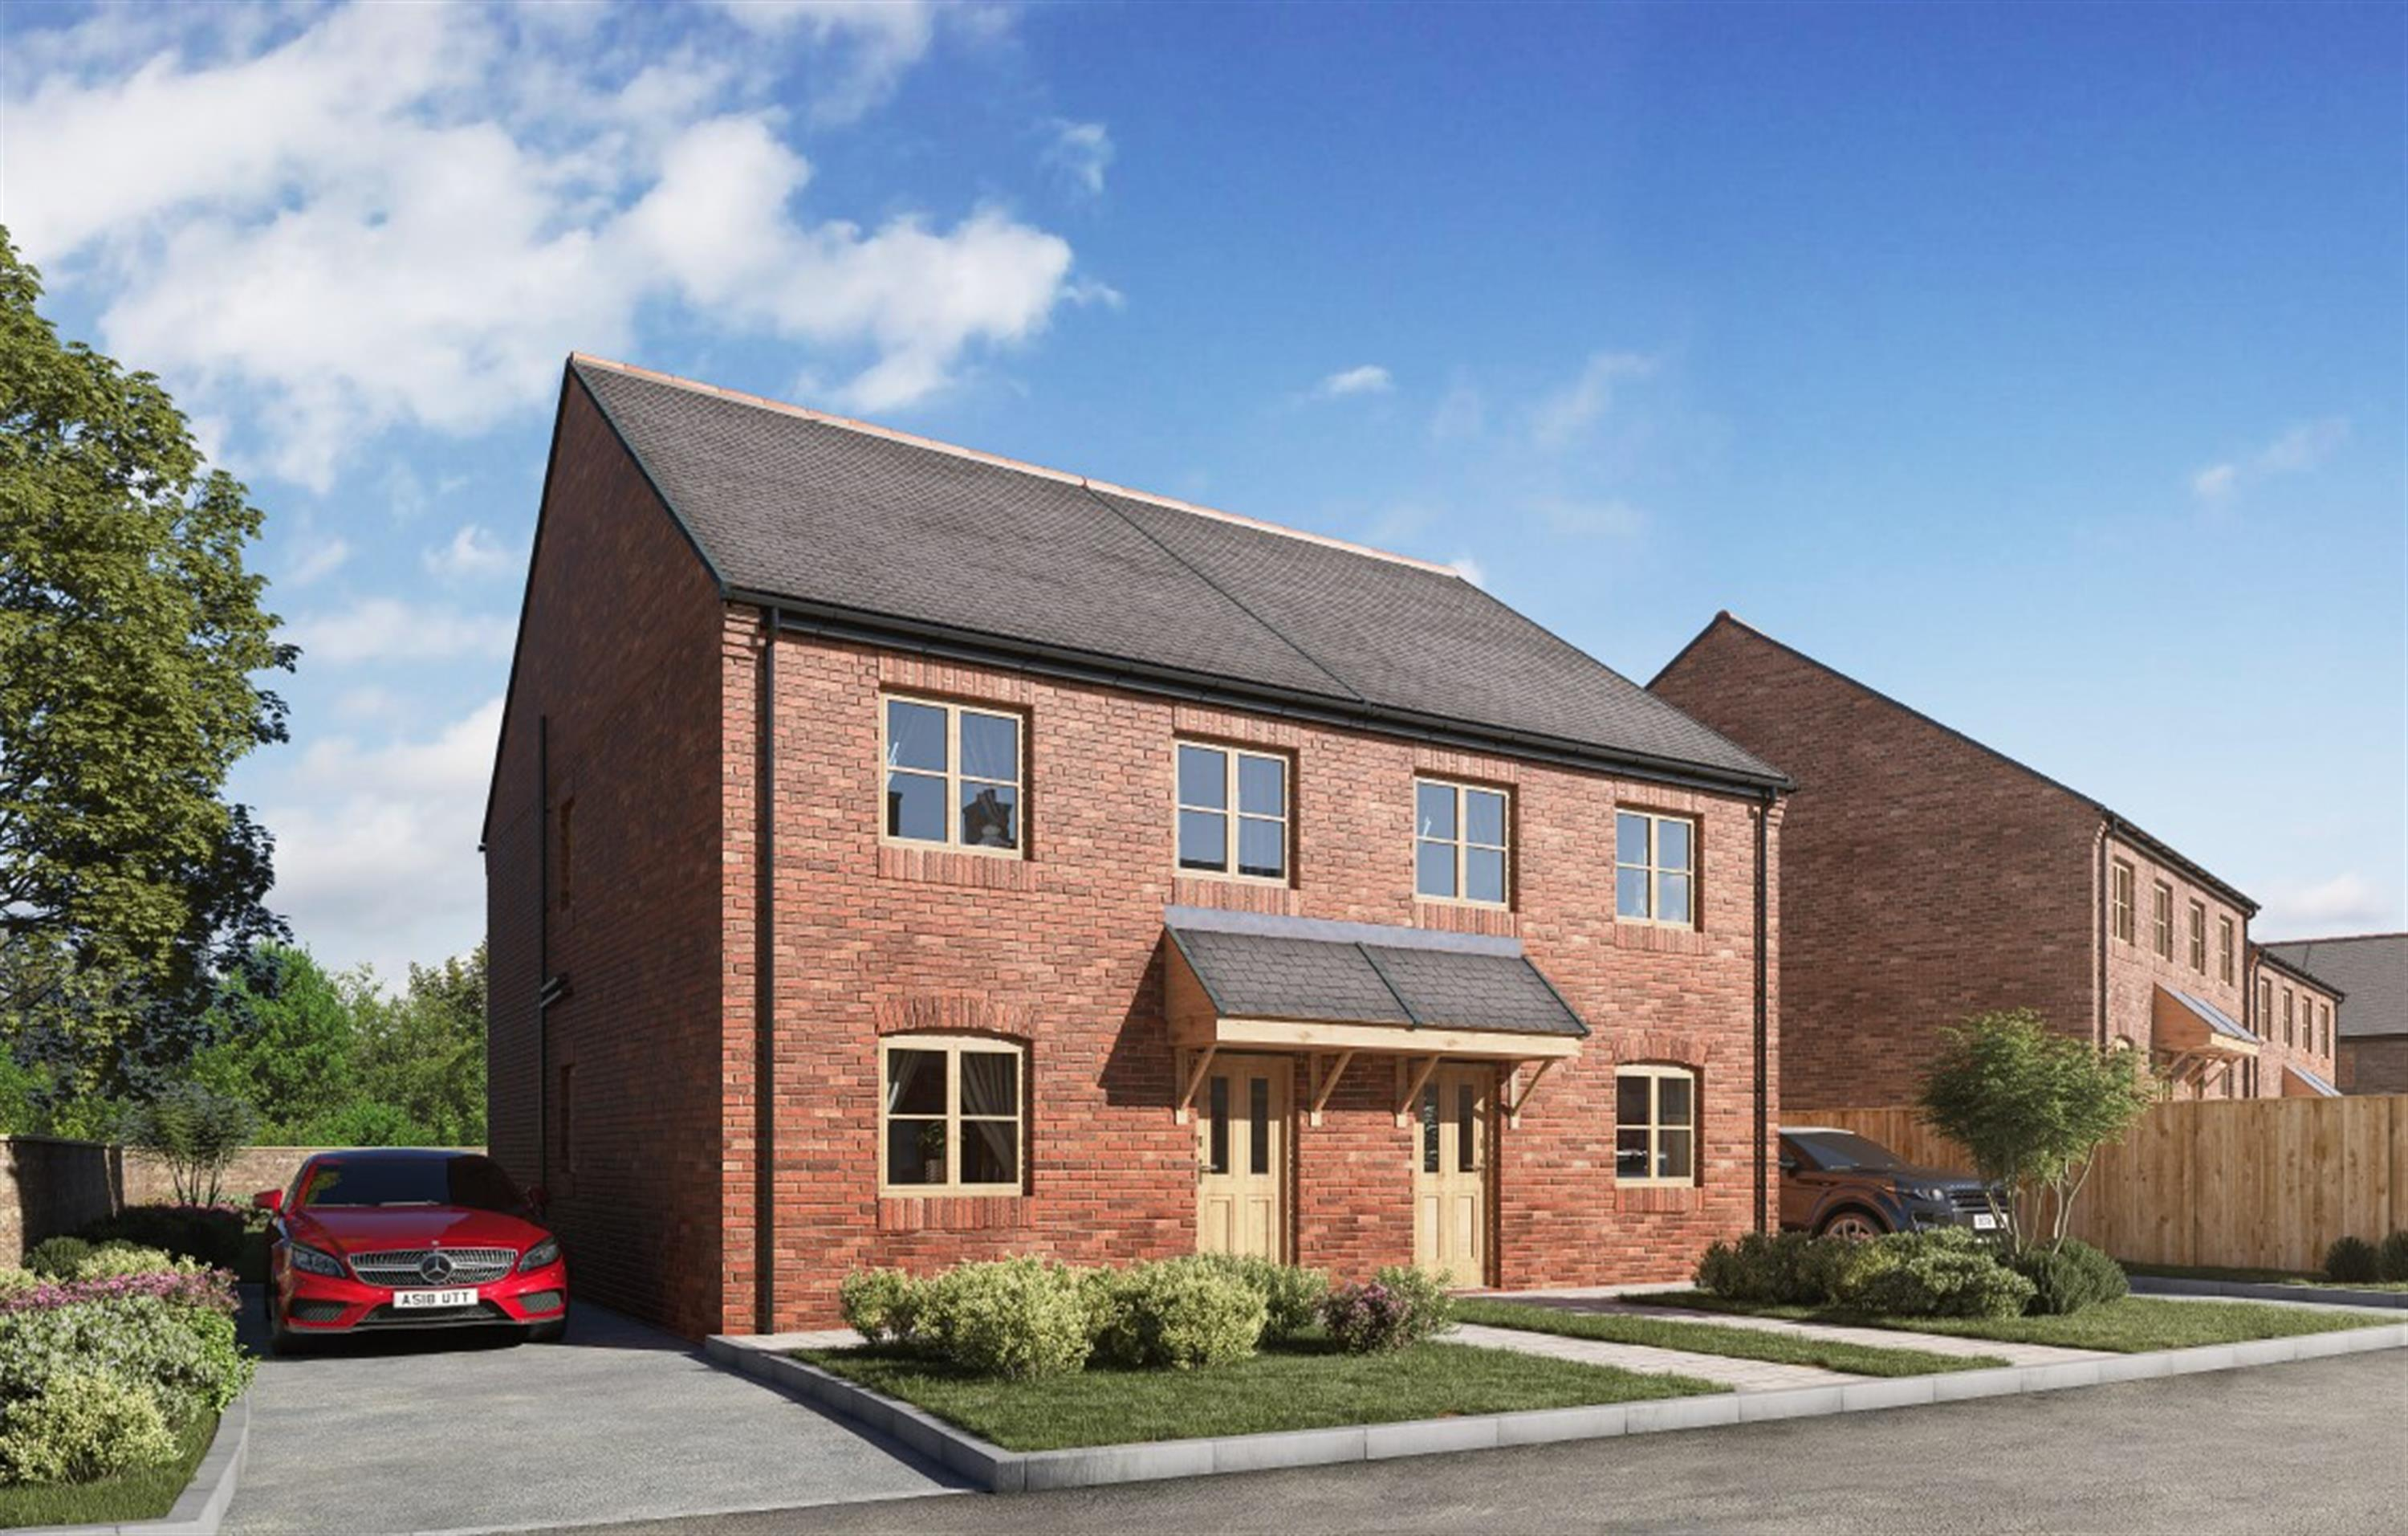 The Newby (plots 1 & 2), Sleights Lane, Rainton, YO7 3SZ